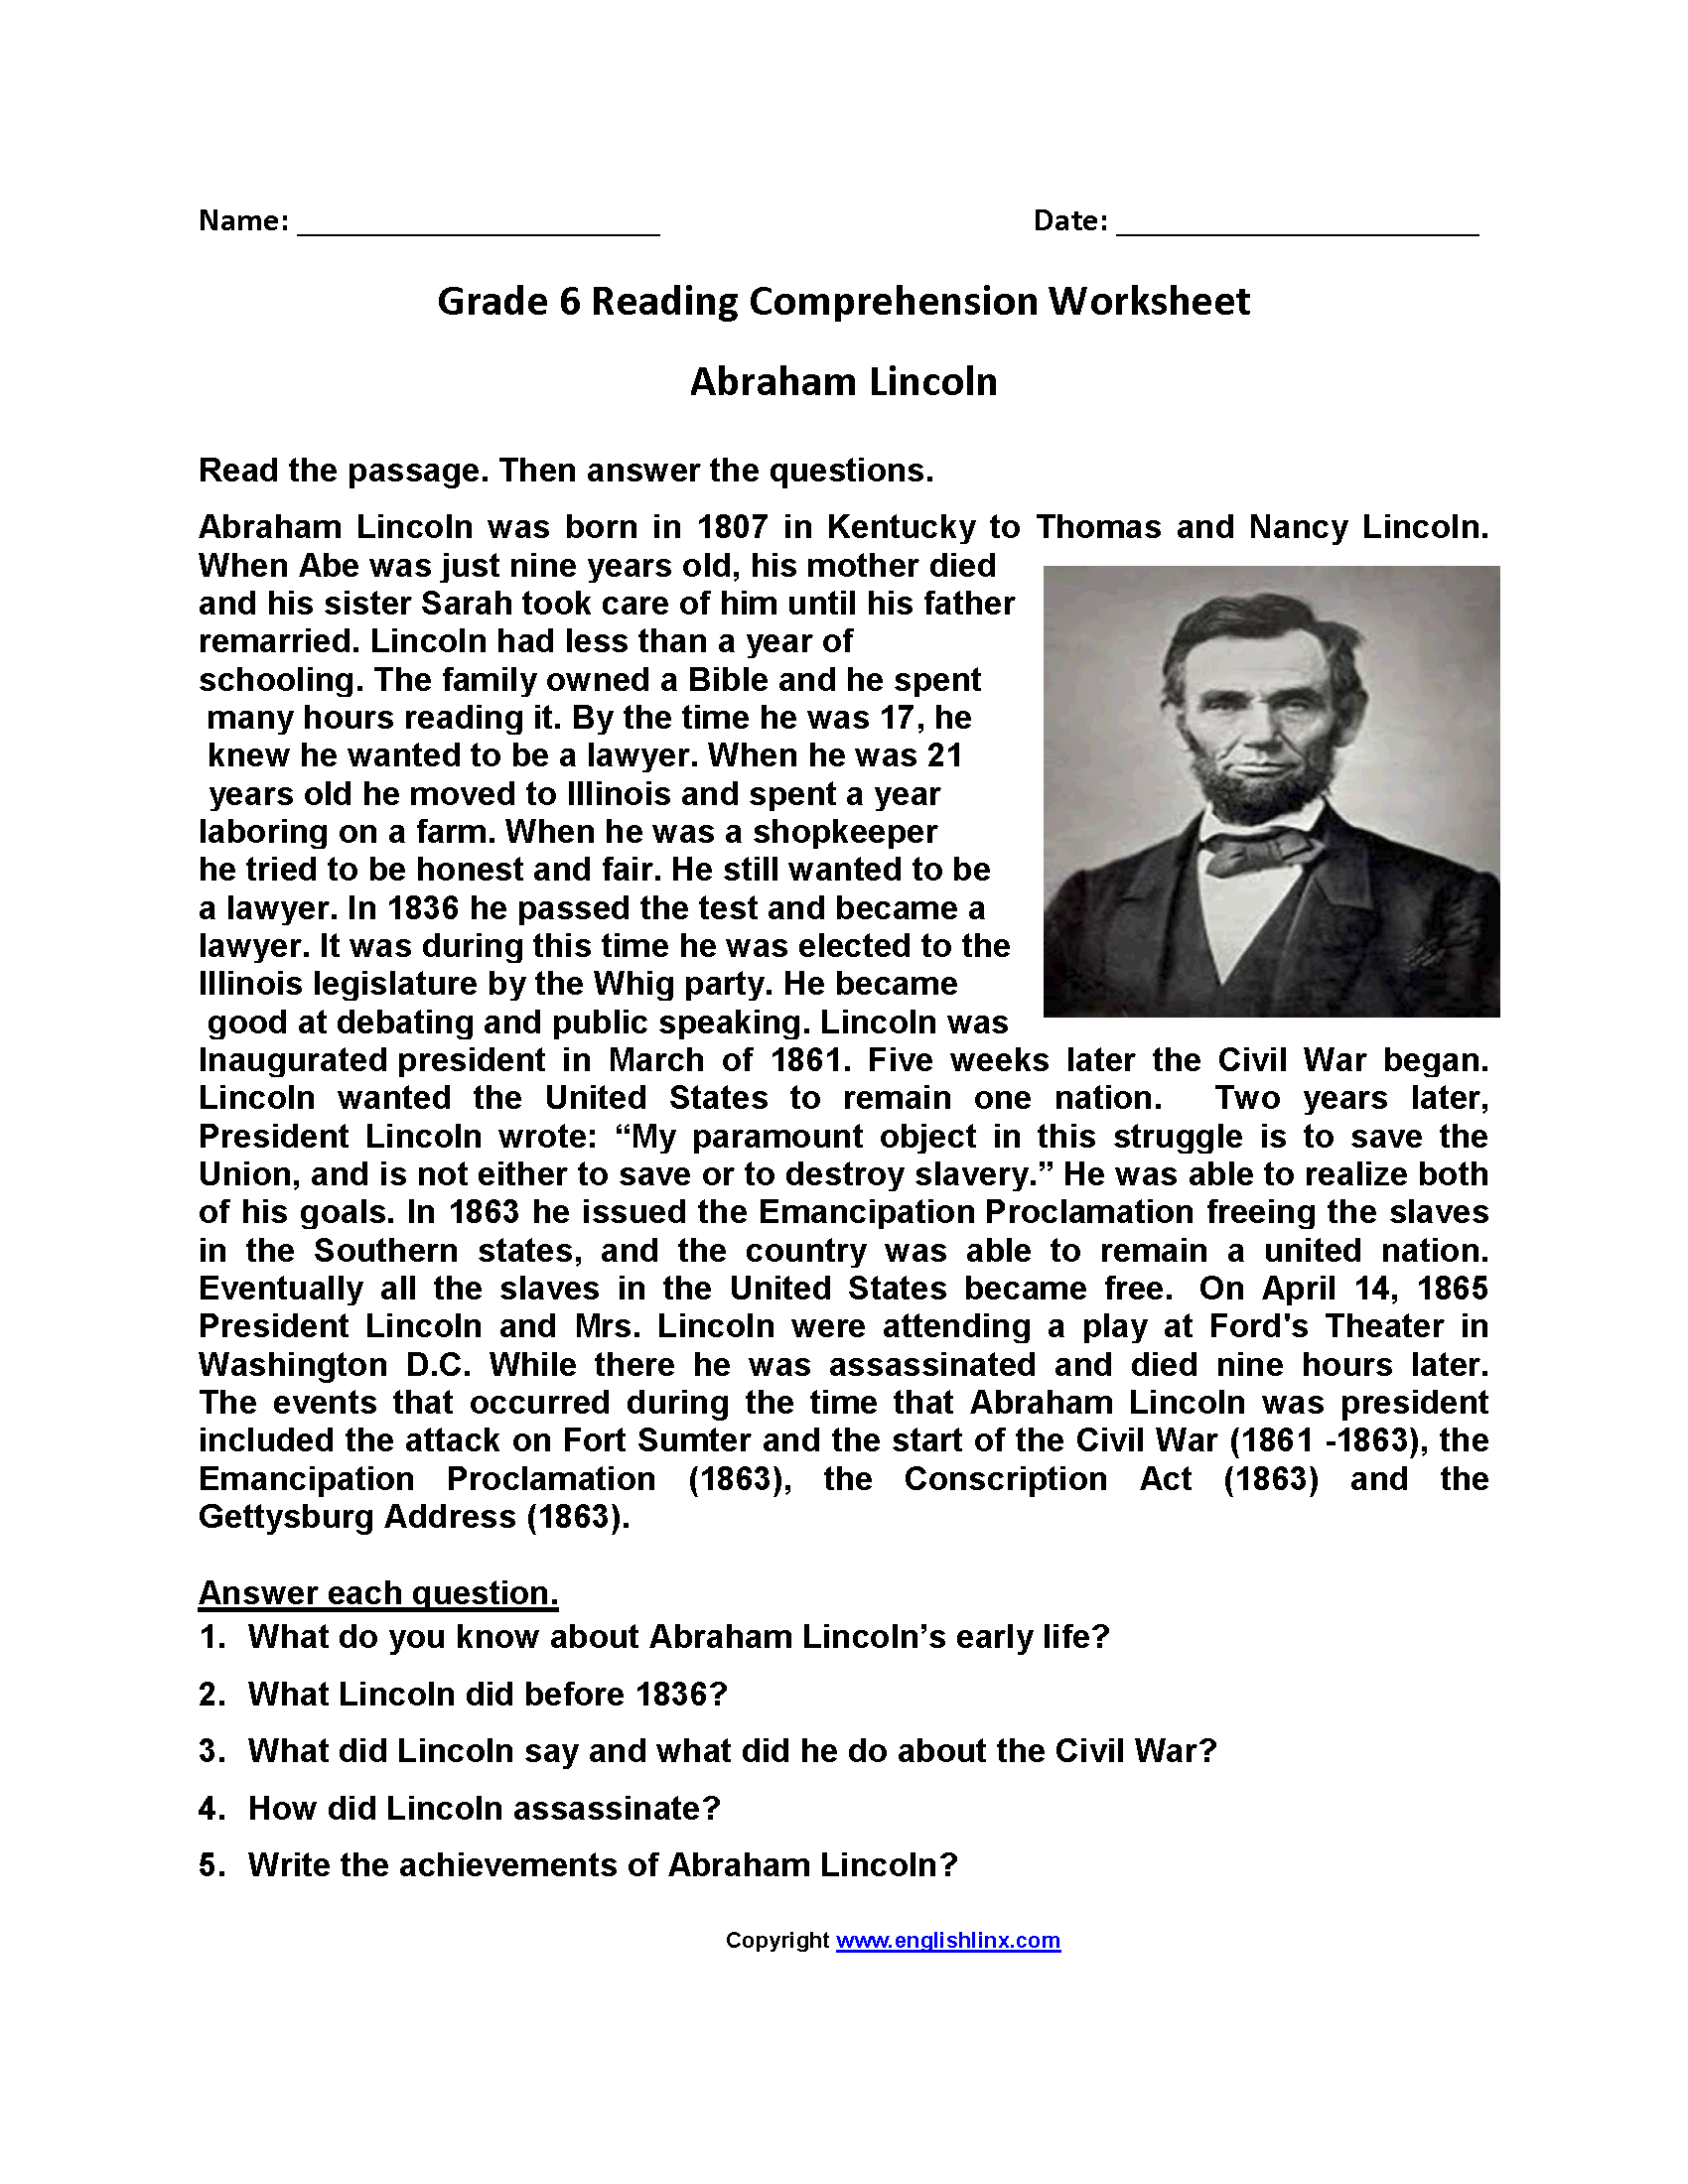 Worksheets 8th Grade Reading Comprehension Worksheets english worksheets reading sixth grade worksheets